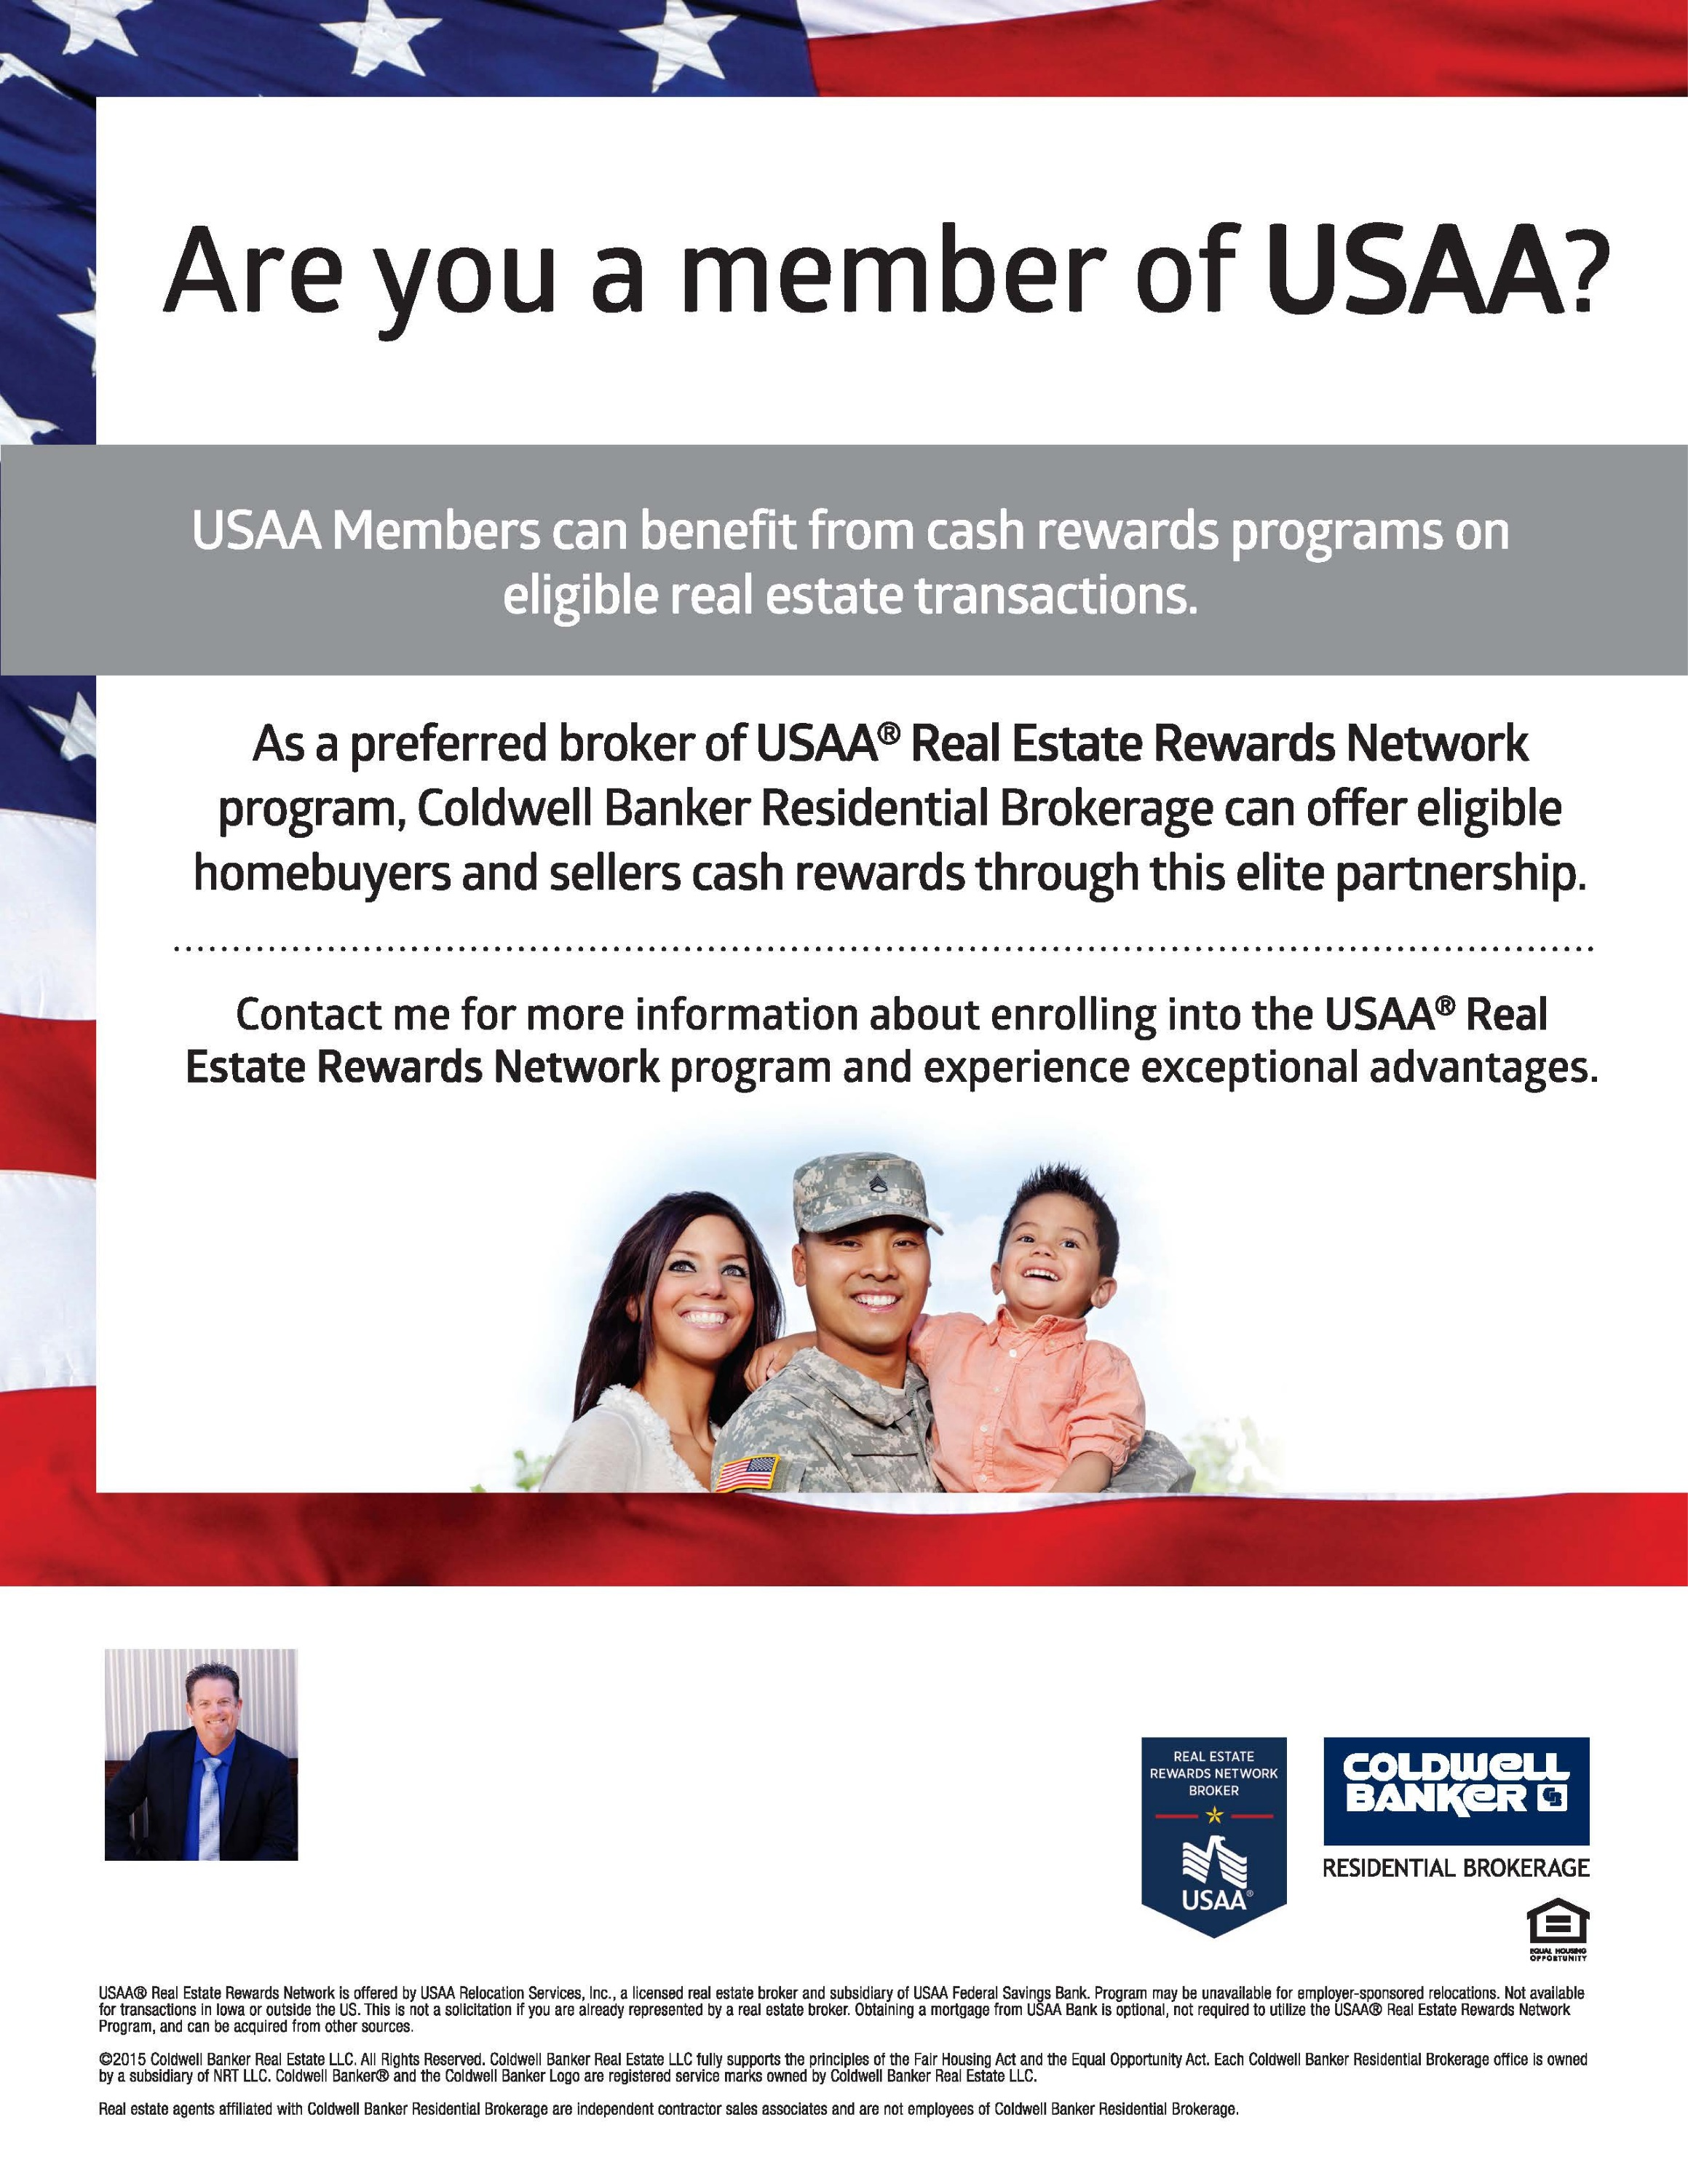 USAA - Coldwell Banker Residential Brokerage